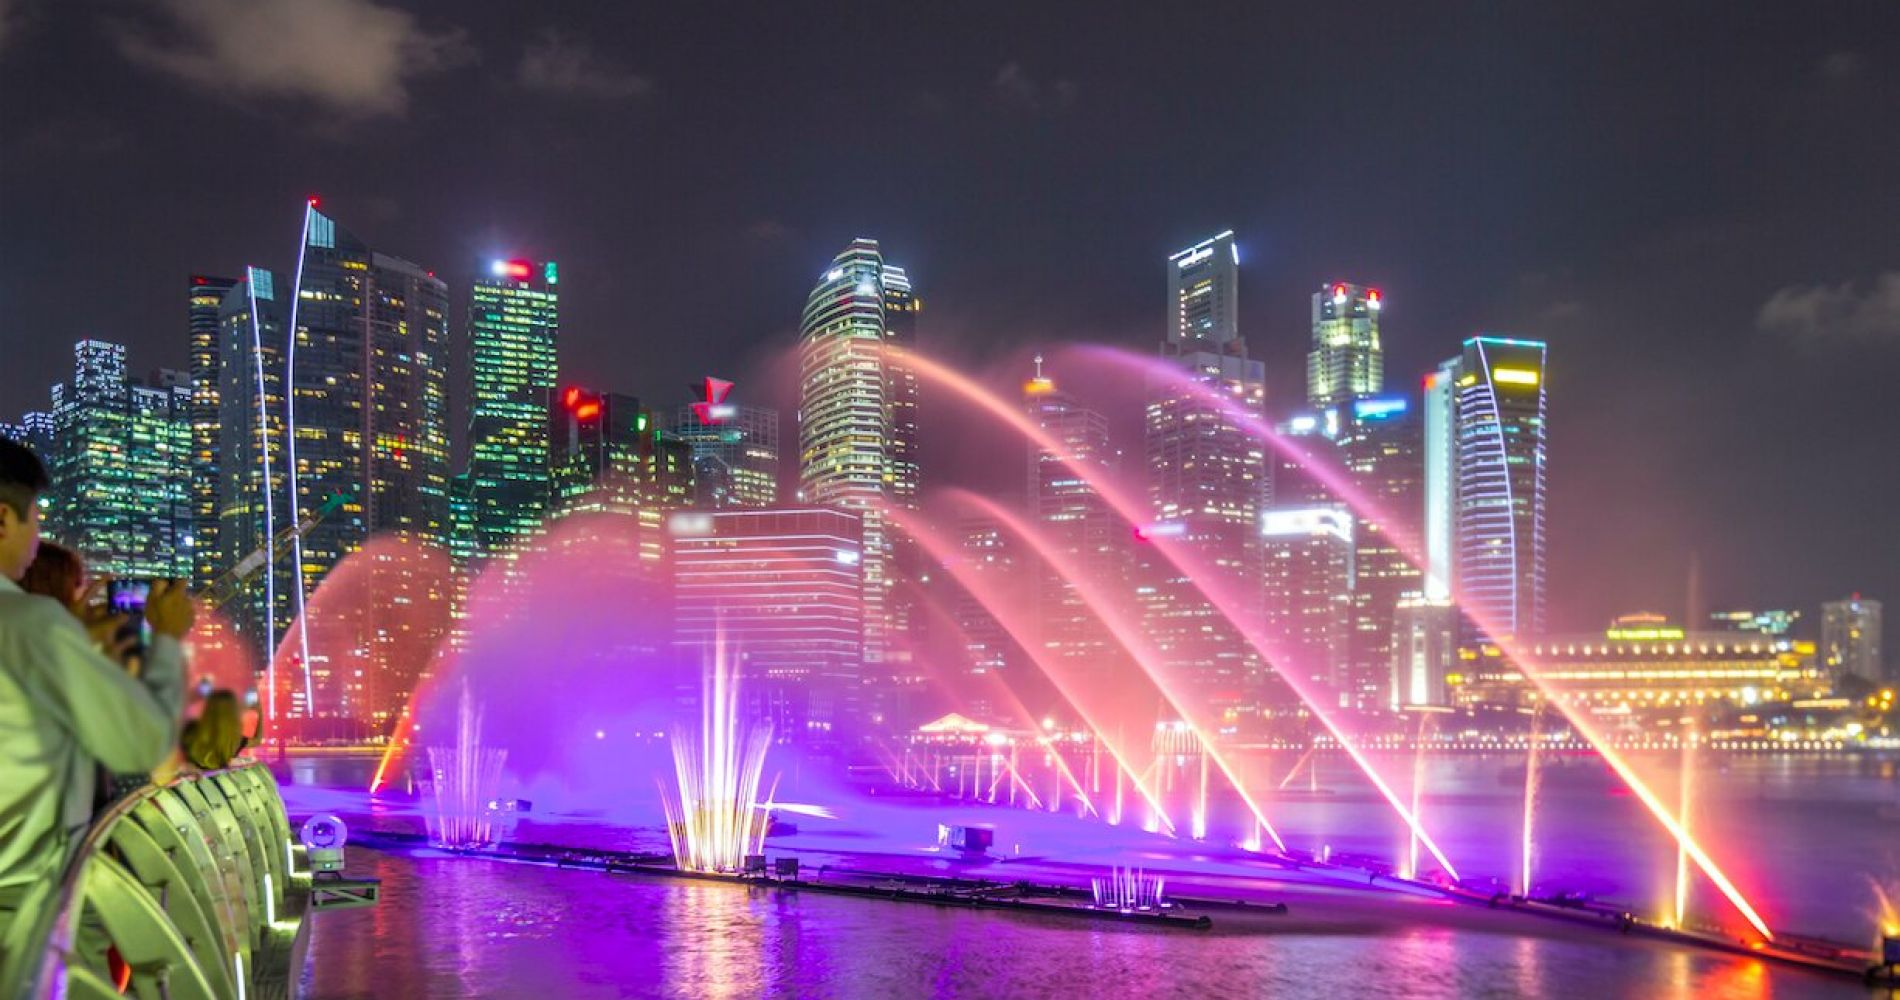 Light & Water Show at Event Plaza, Singapore